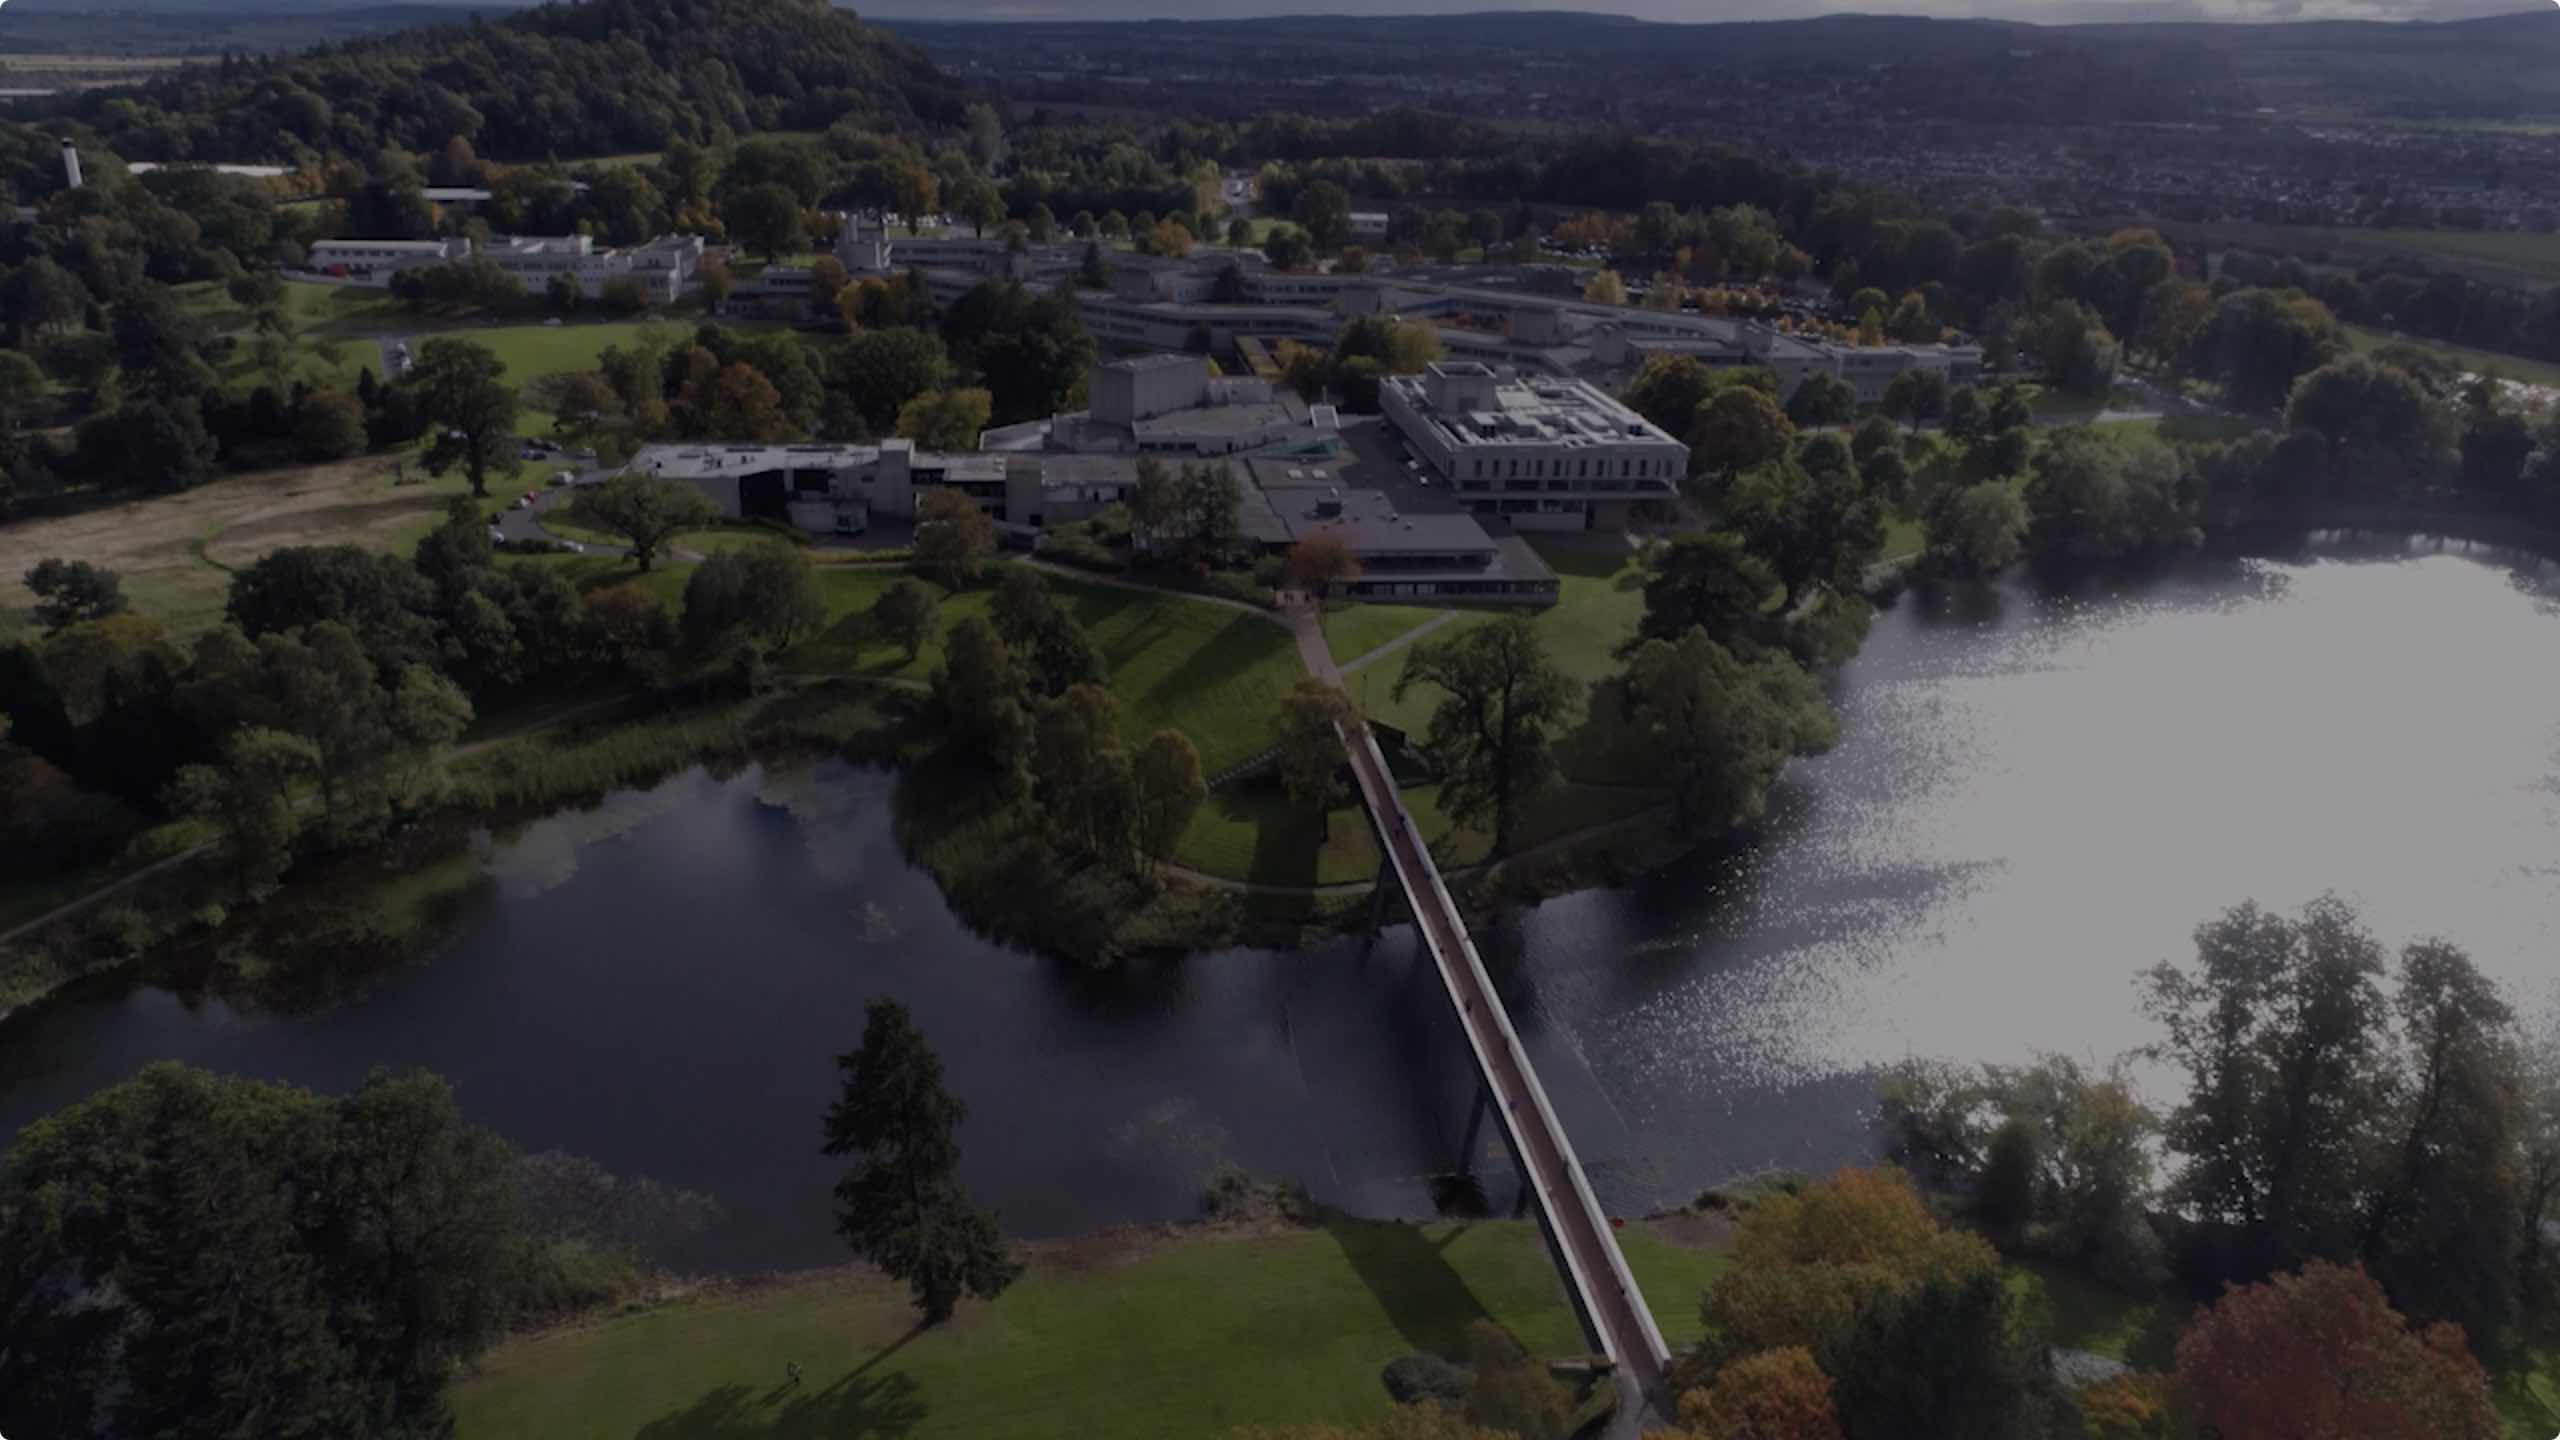 Aerial photograph of the University of Stirling campus